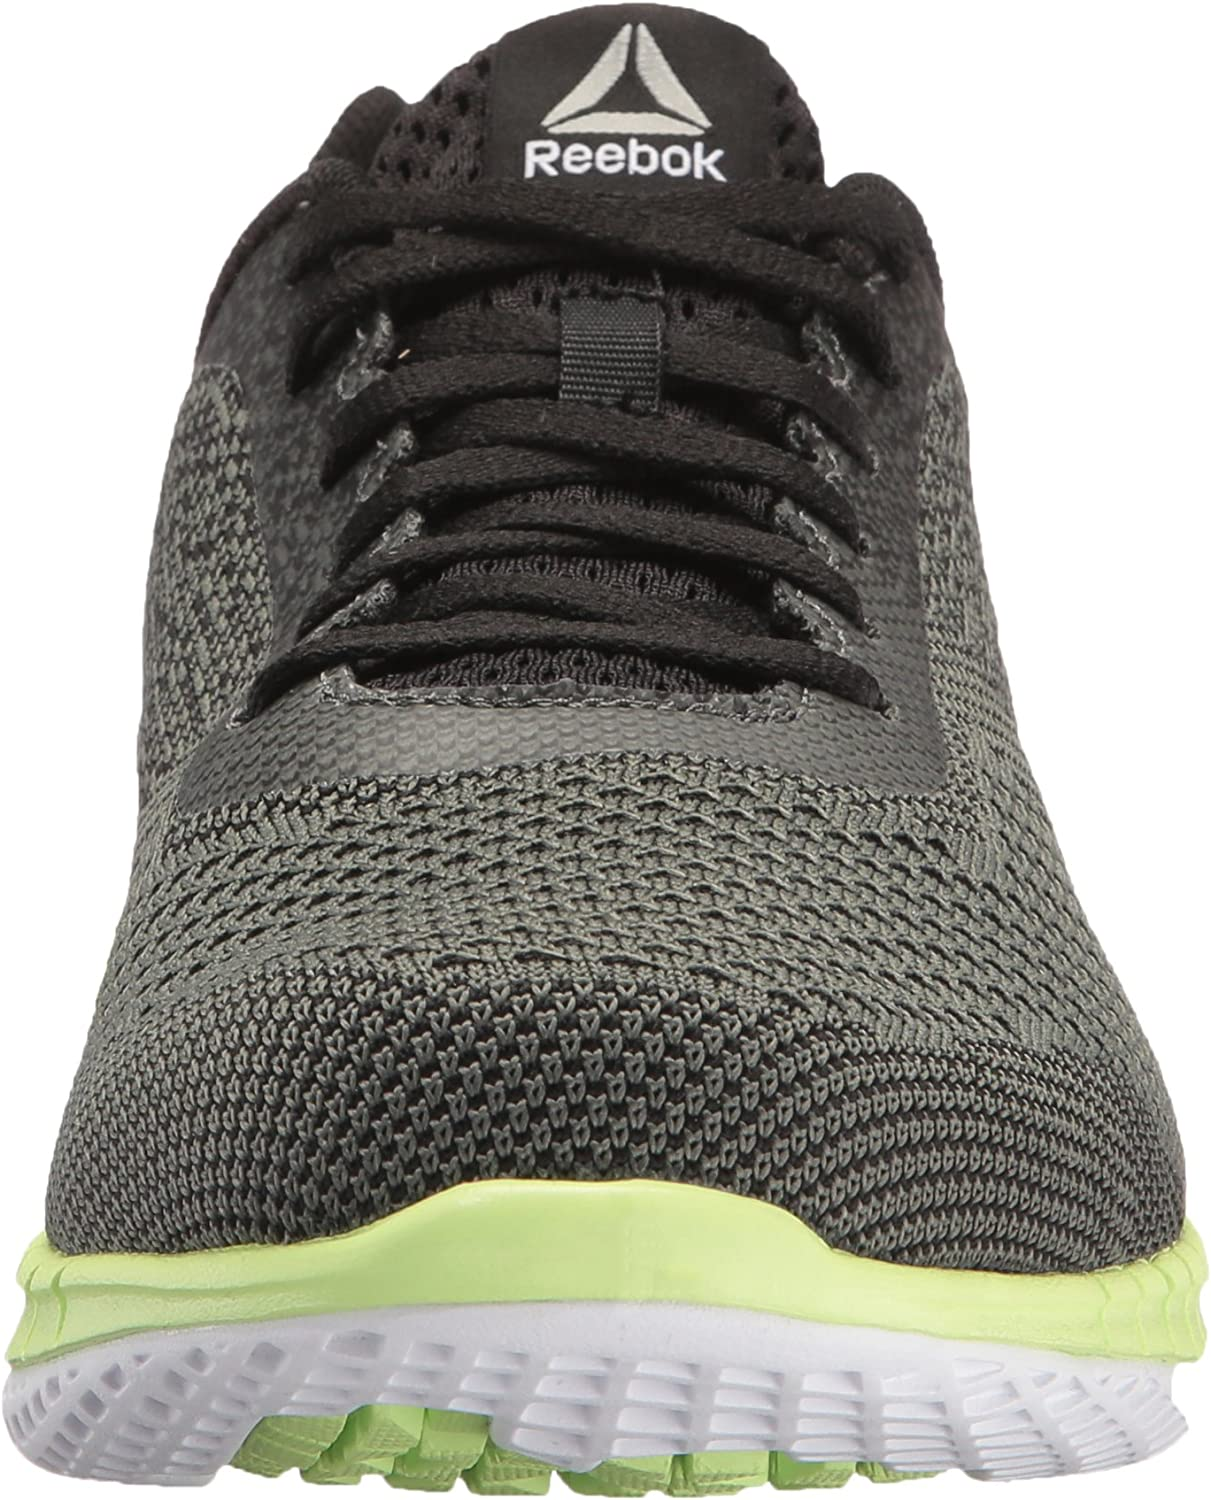 Reebok Mens Print Run Prime Ultk Shoe